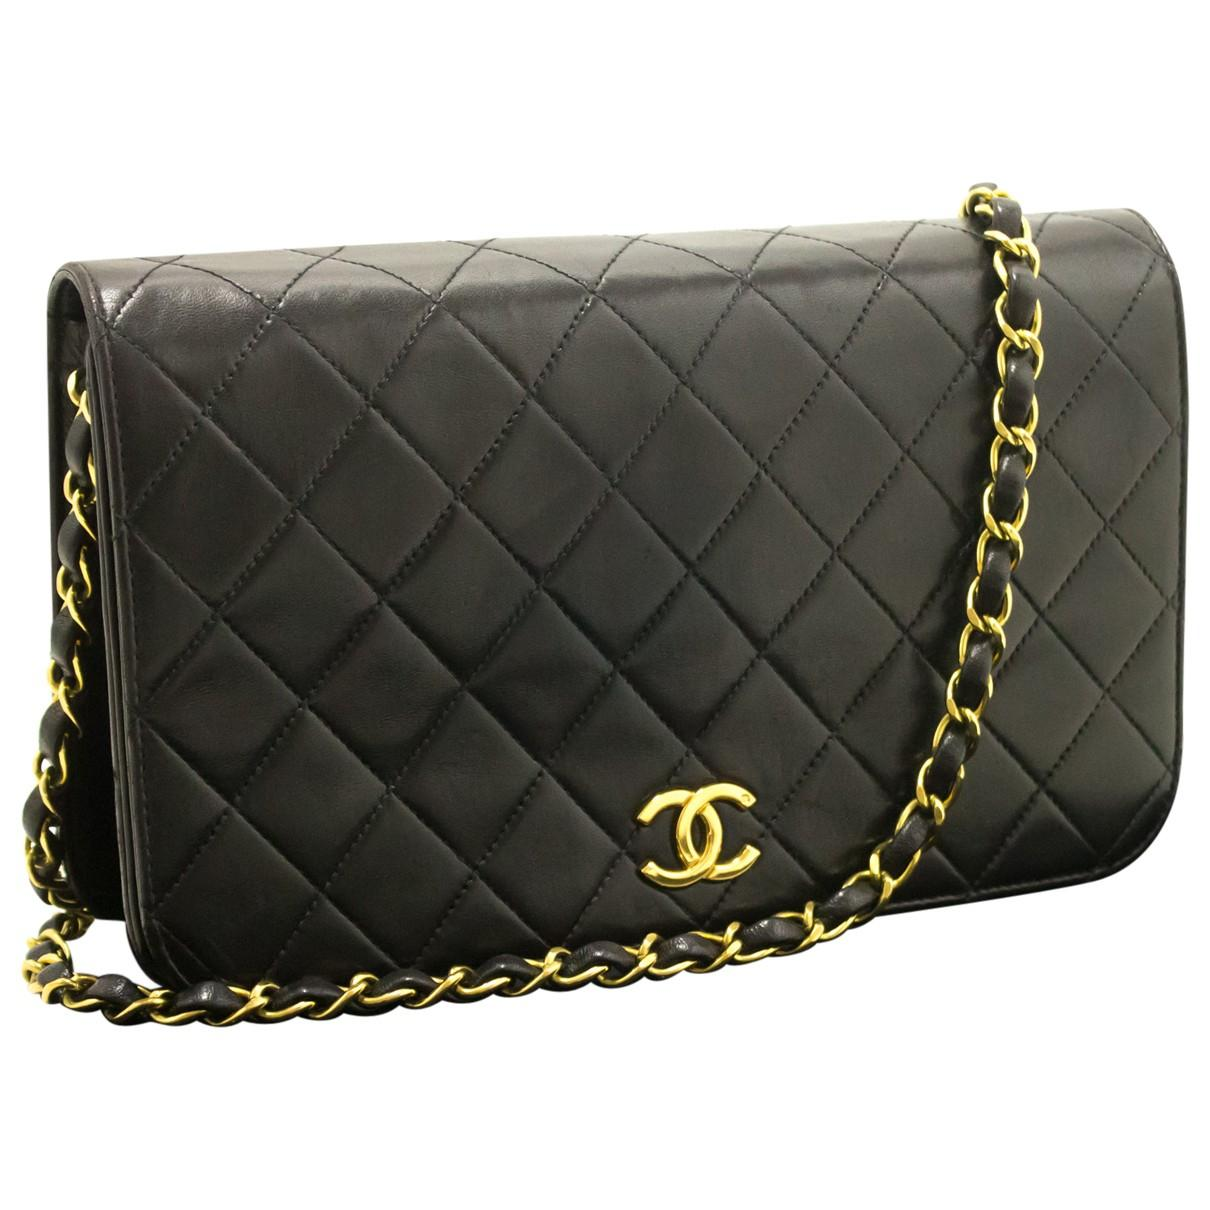 484100248bdb Chanel. Women's Pre-owned Vintage Black Leather Clutch Bag. $1,897 From Vestiaire  Collective